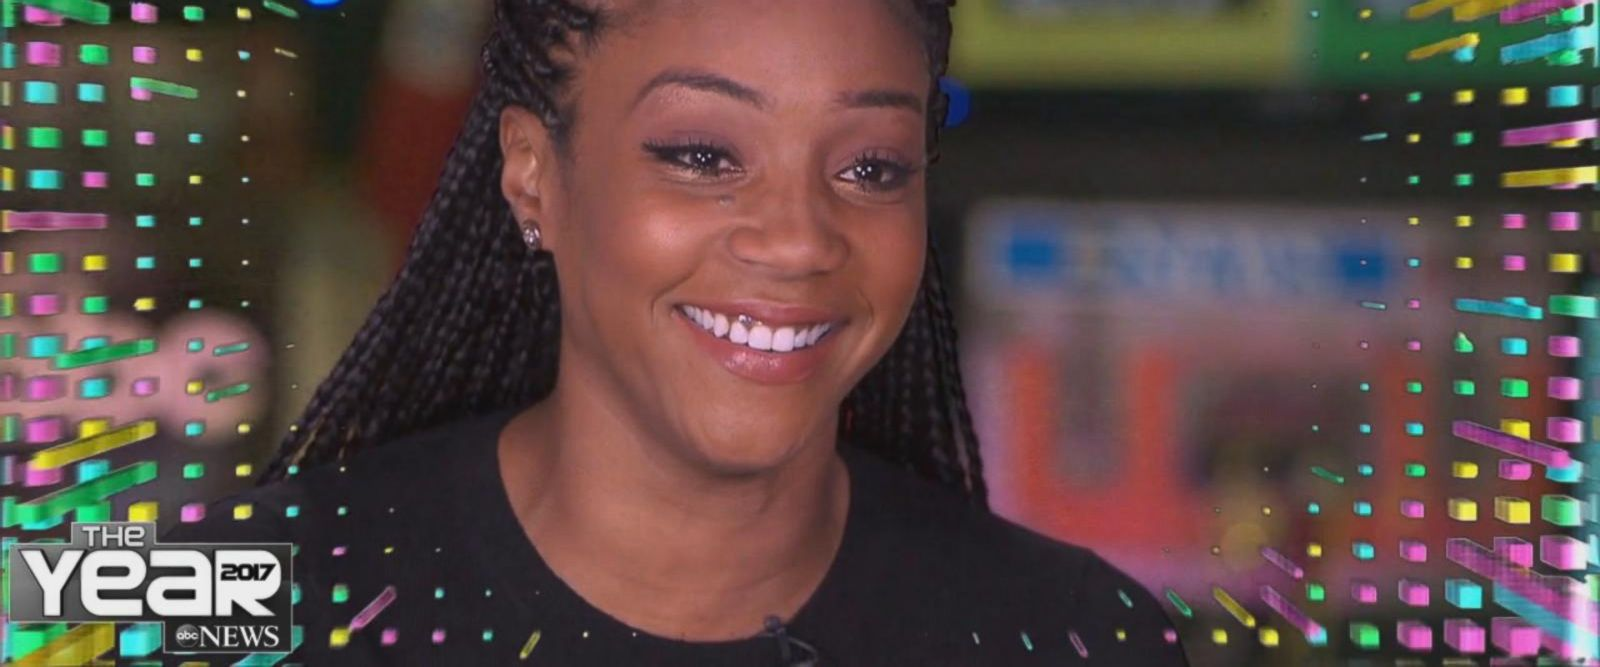 VIDEO: Tiffany Haddish on how life has changed since starring in 'Girls Trip'